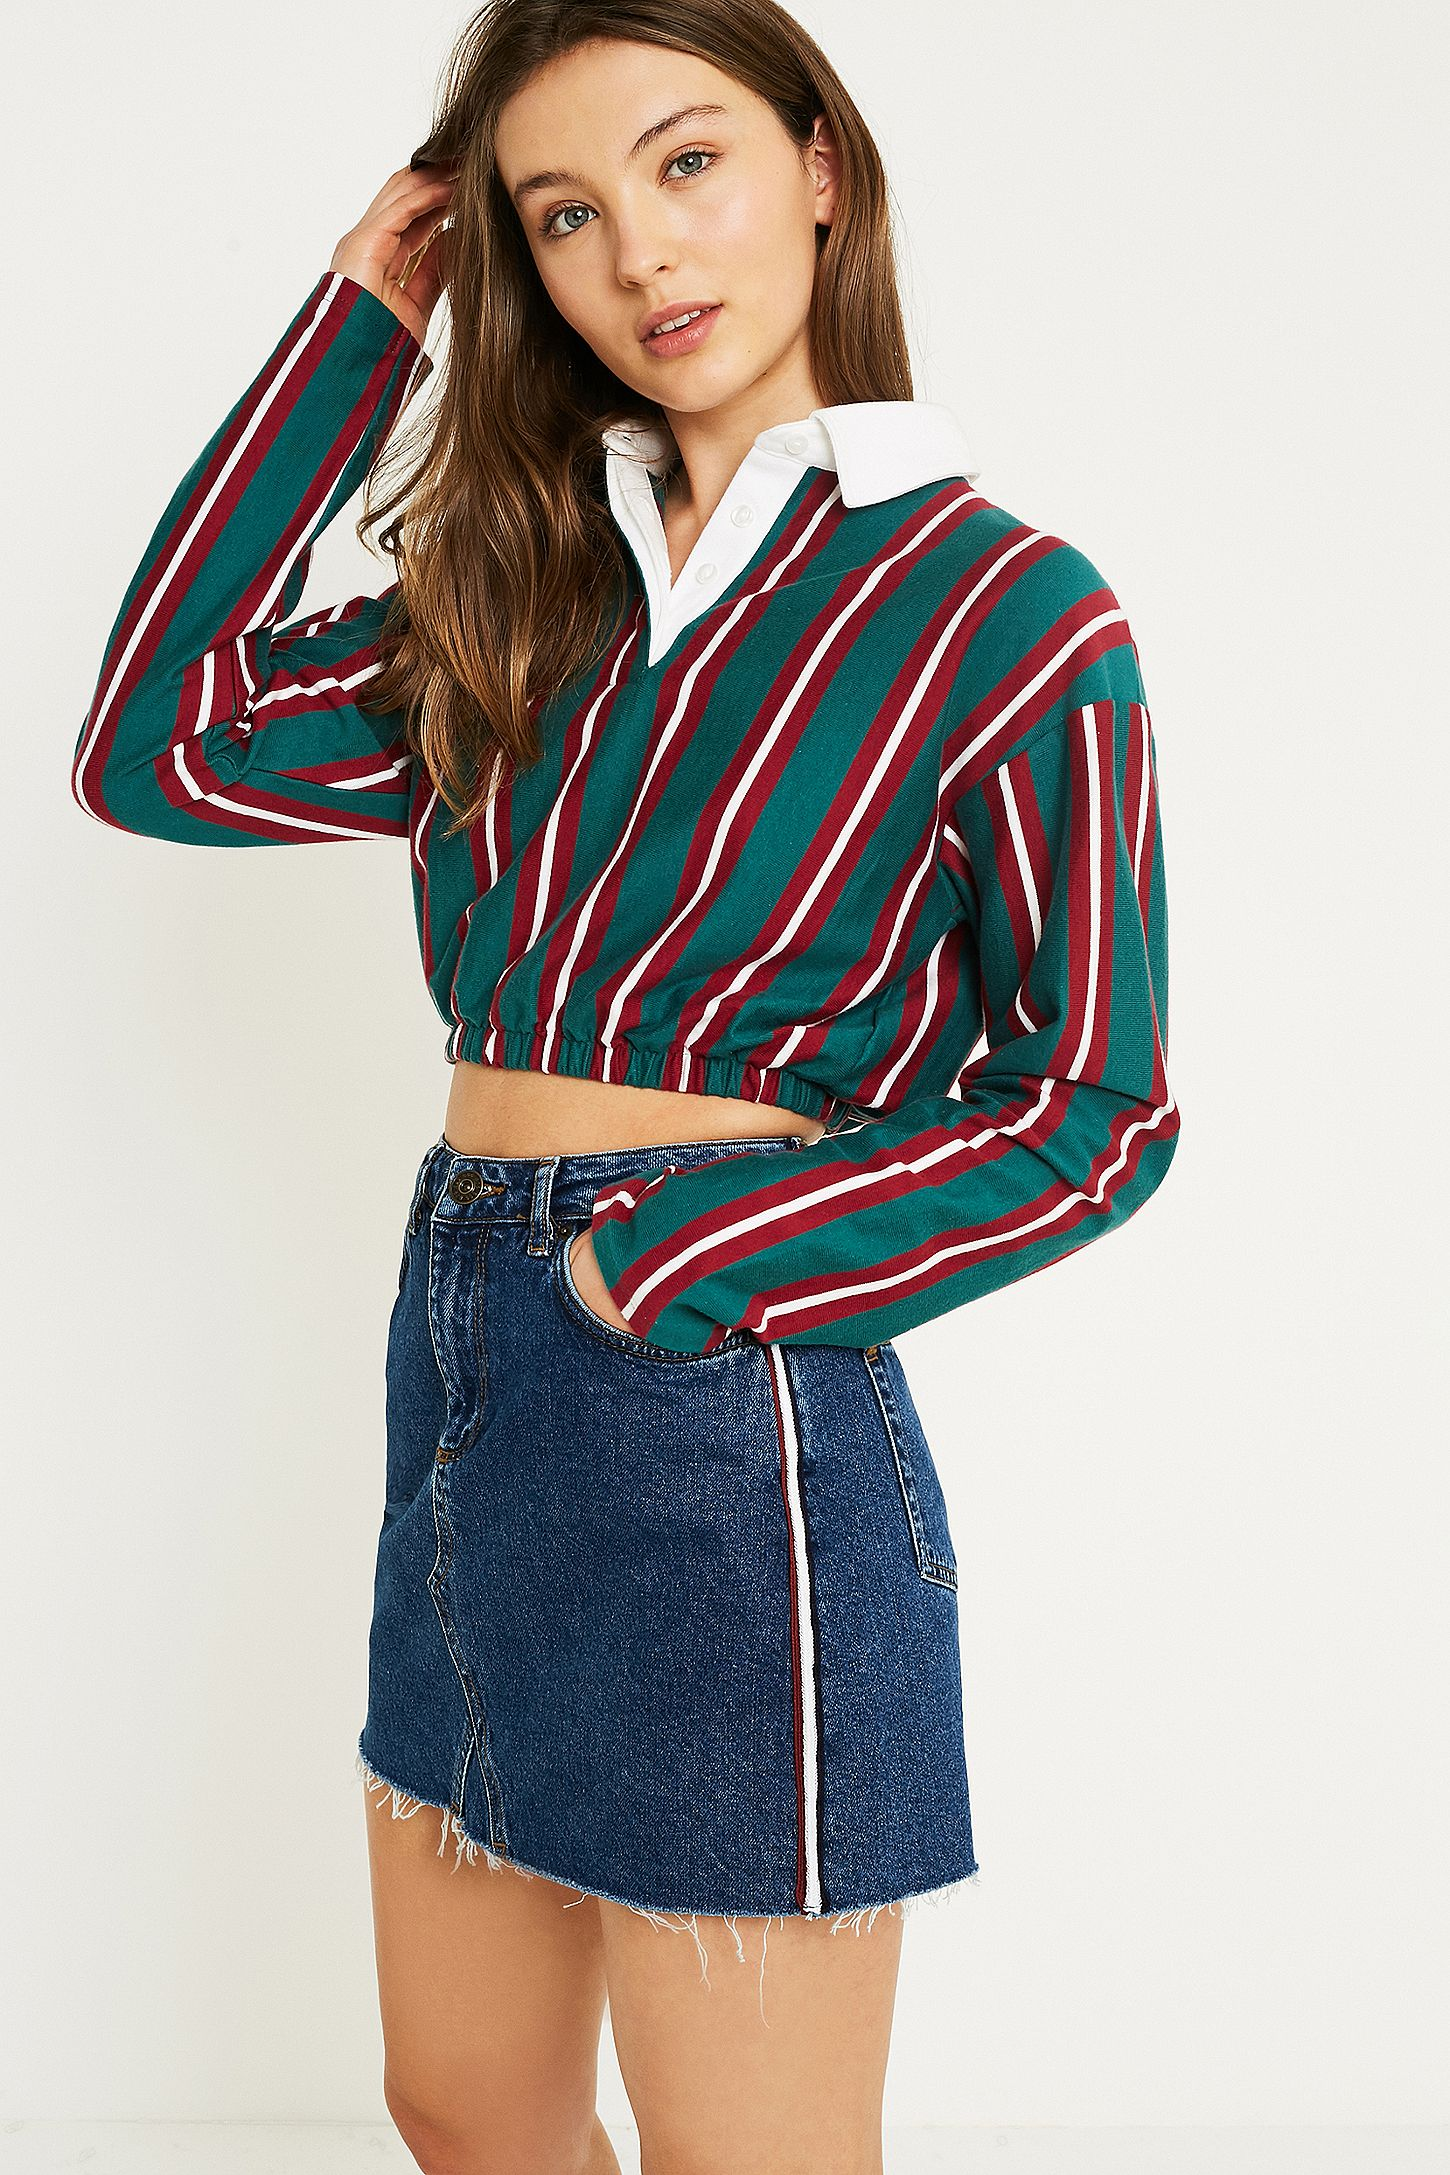 8e585d81c8 BDG Side Stripe Vintage Blue Notched Denim Mini Skirt. Click on image to  zoom. Hover to zoom. Double Tap to Zoom